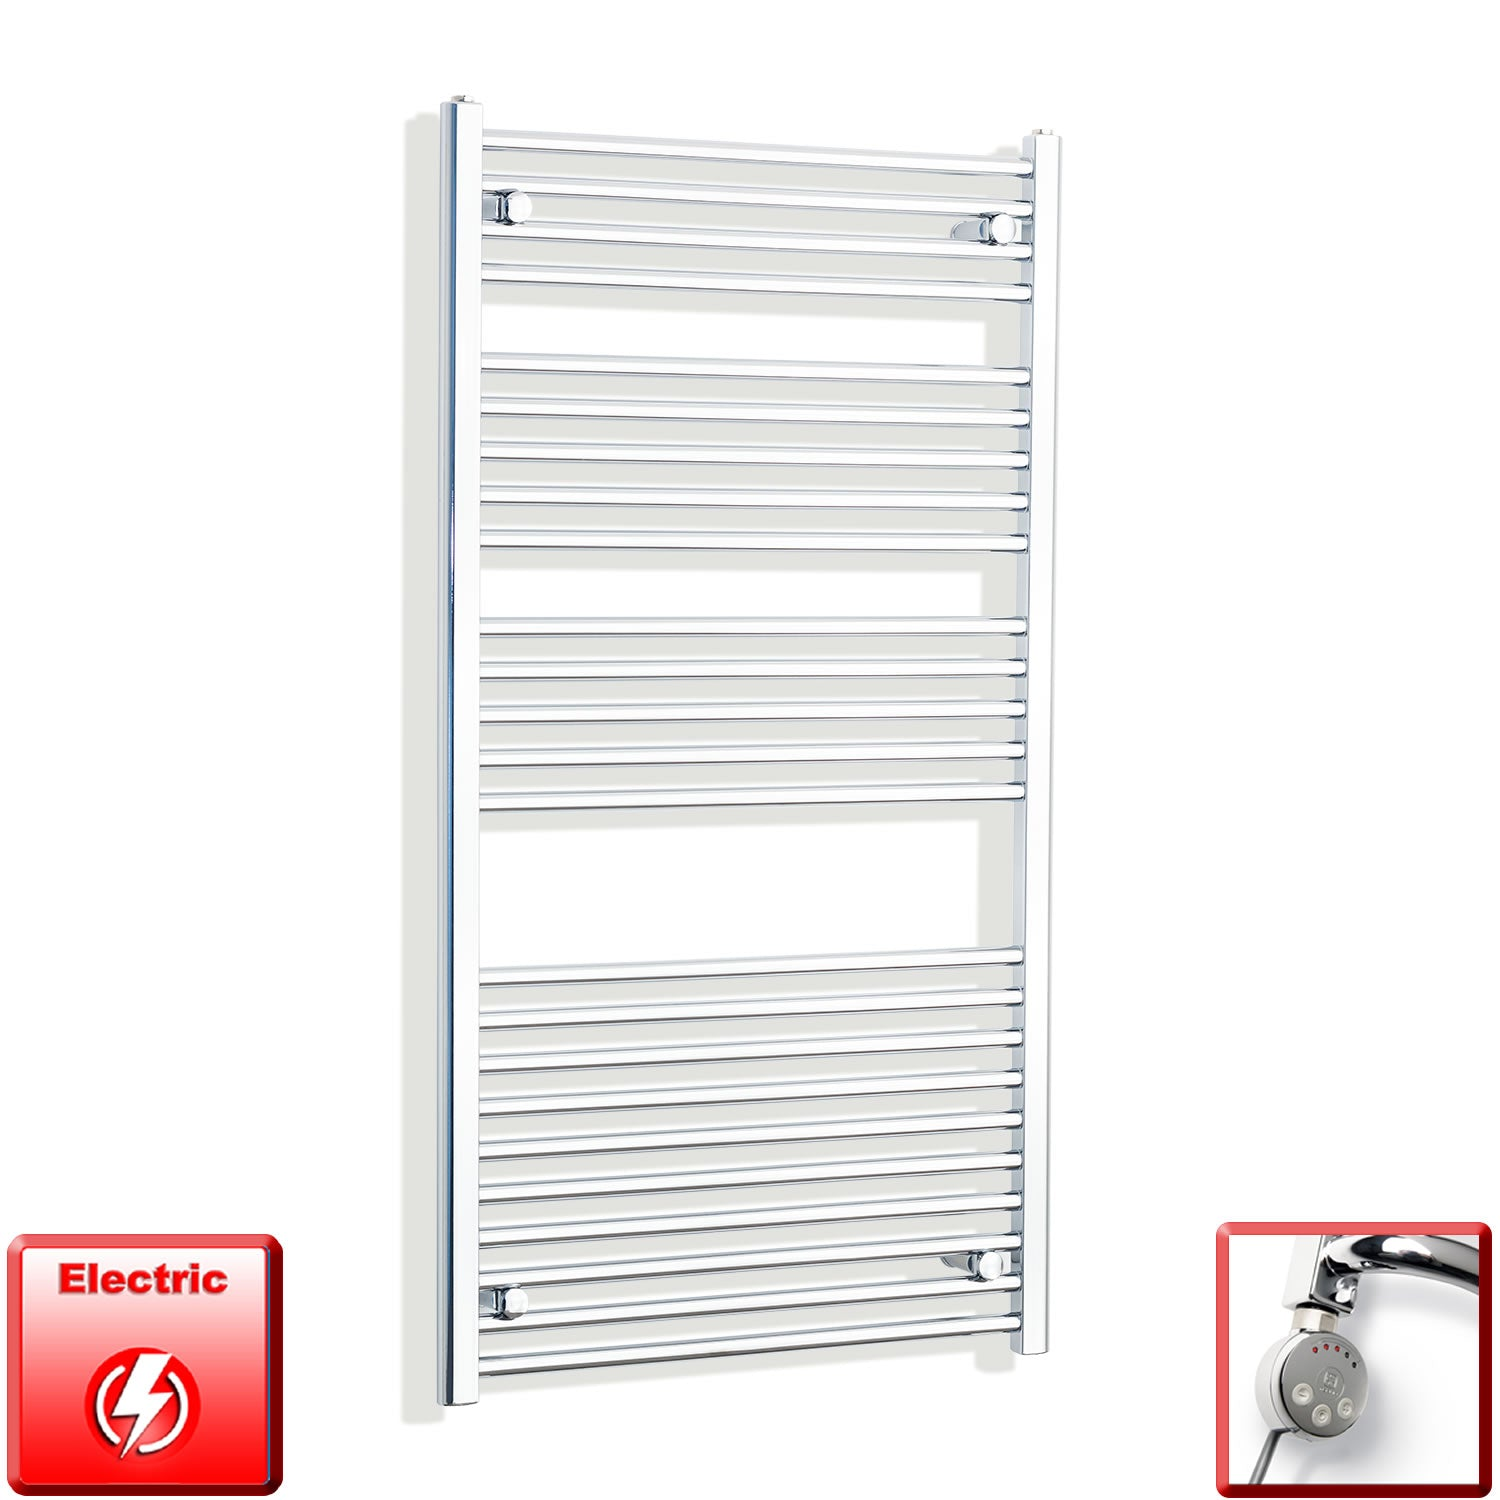 700mm Wide 1300mm High Flat Or Curved Chrome Pre-Filled Electric Heated Towel Rail Radiator HTR,MEG Thermostatic Element / Straight